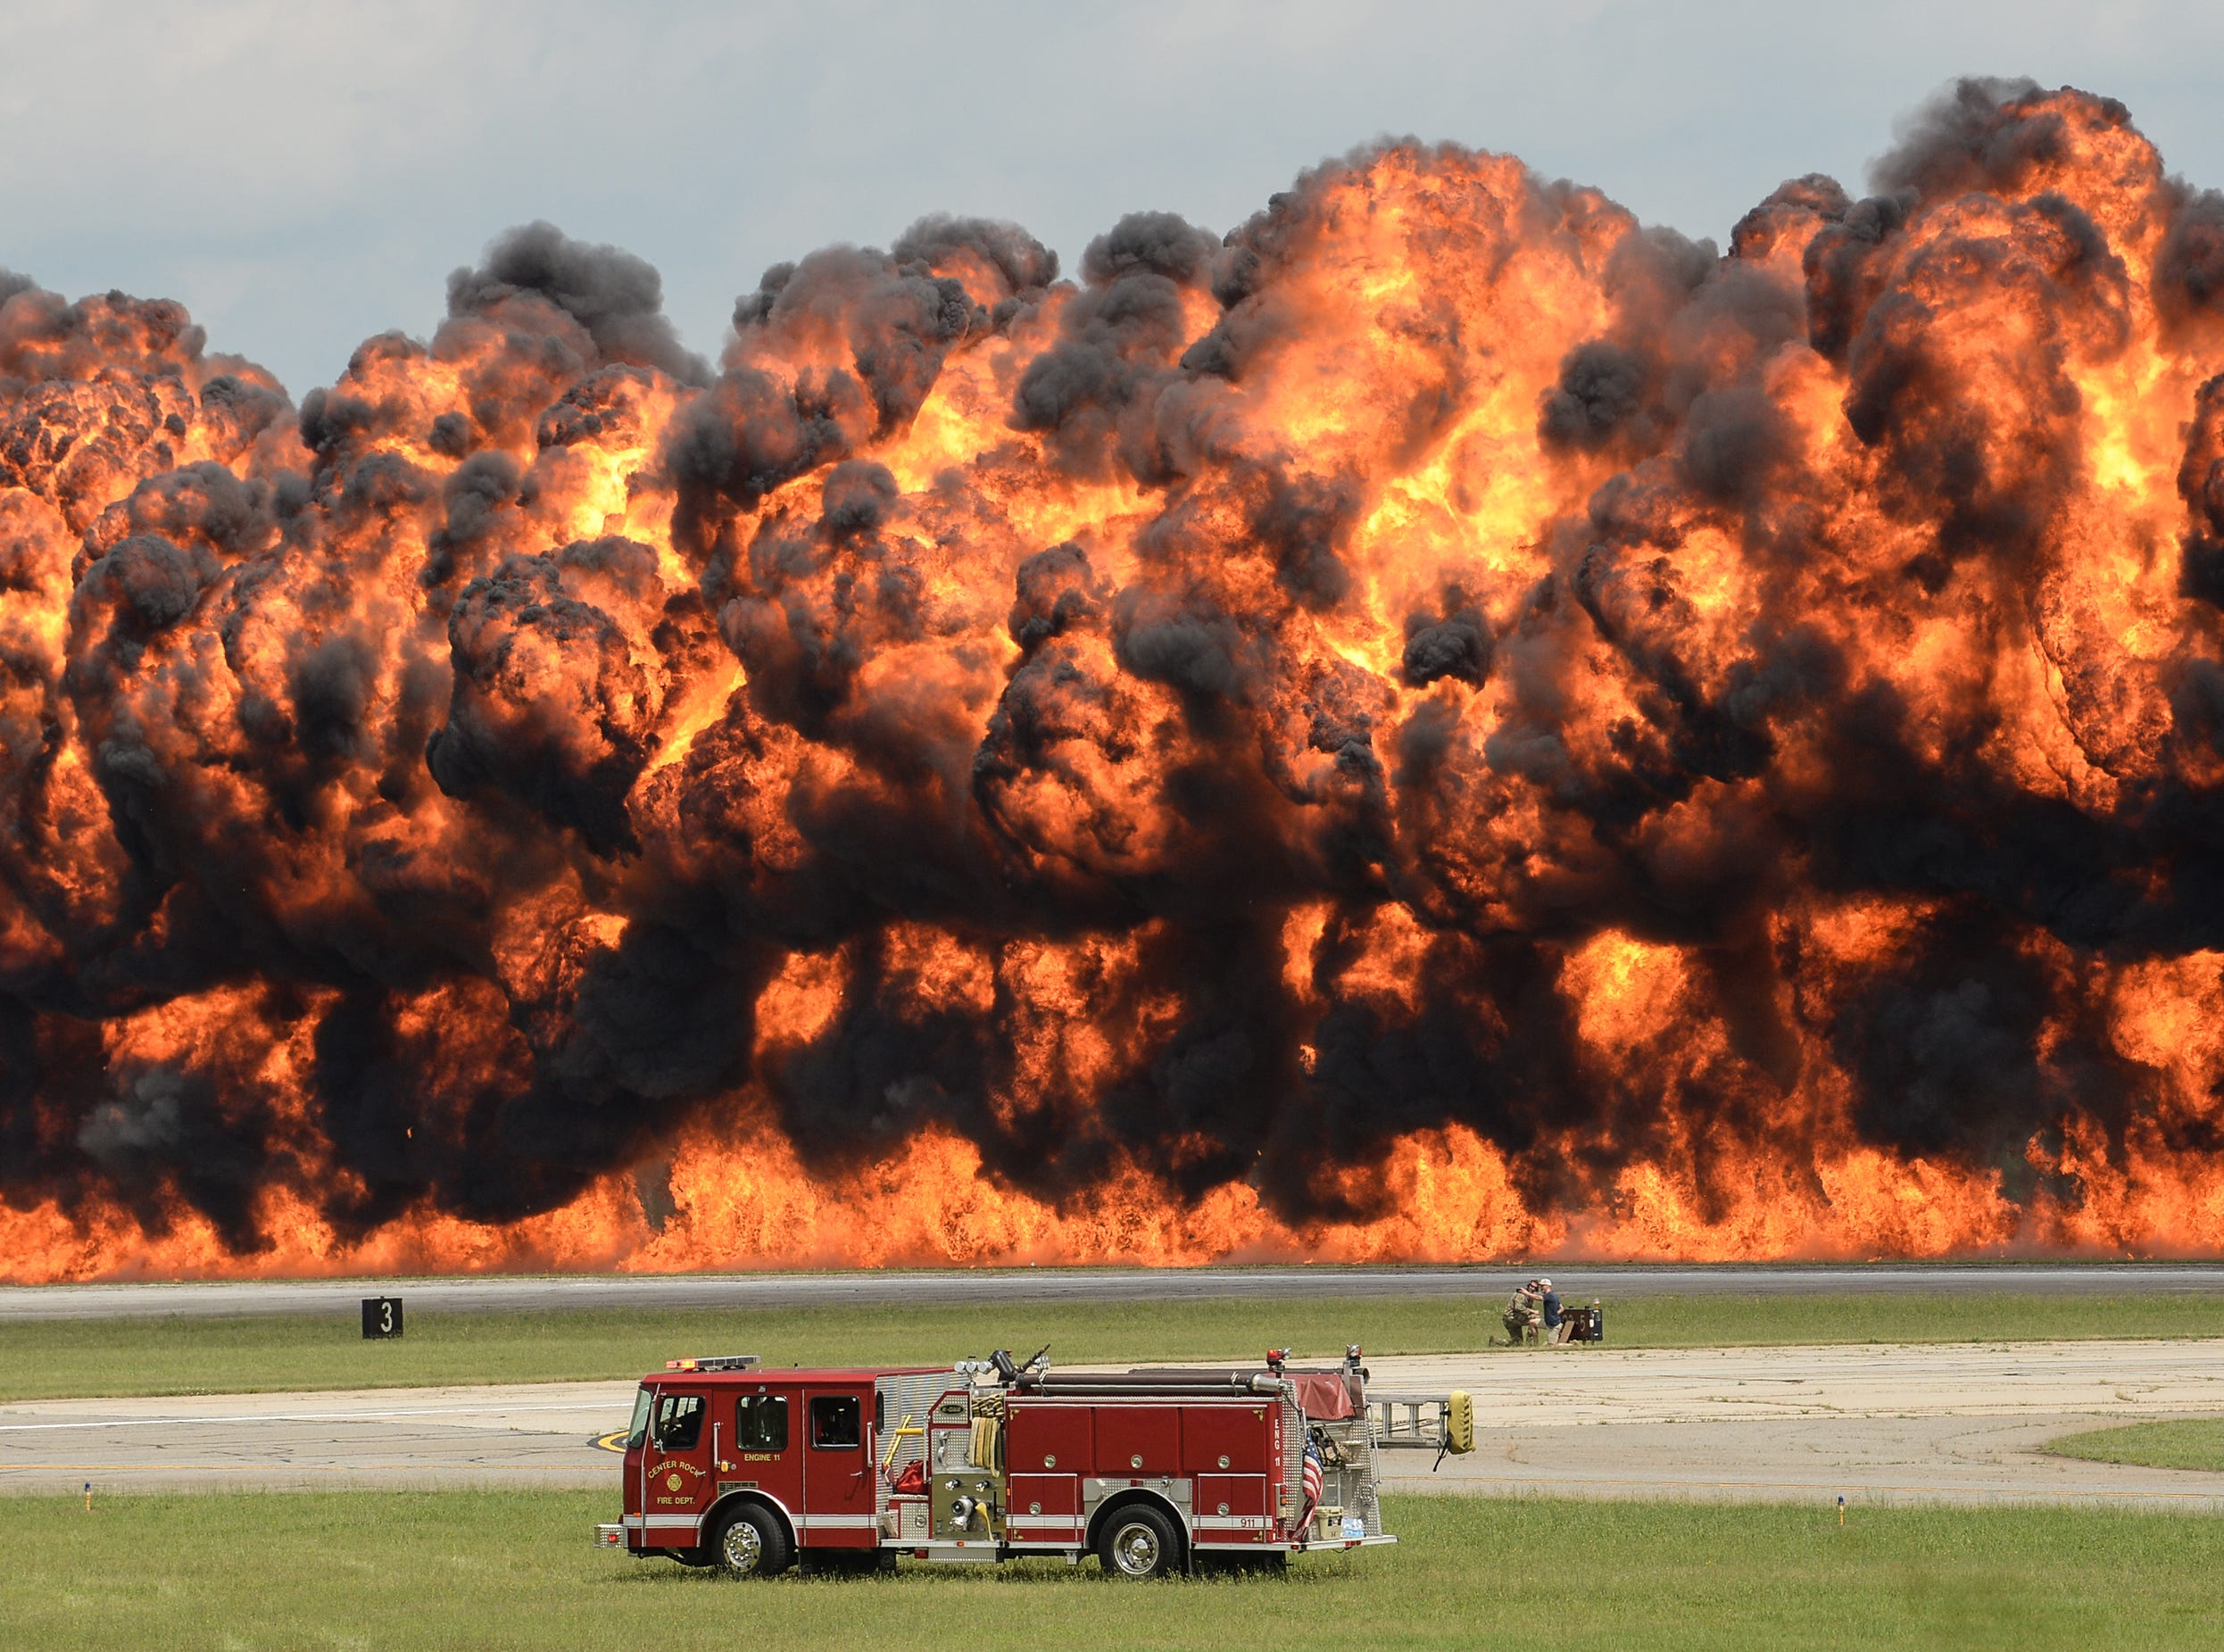 """Feel the heat"" - Center Rock fire department truck is dwarfed by the flames created by the Firewalkers International Pyrotechnics demonstration team during the Jo & Bill Trent Regional Airshow. No one was hurt in the fiery demonstration which got the crowd's approval."